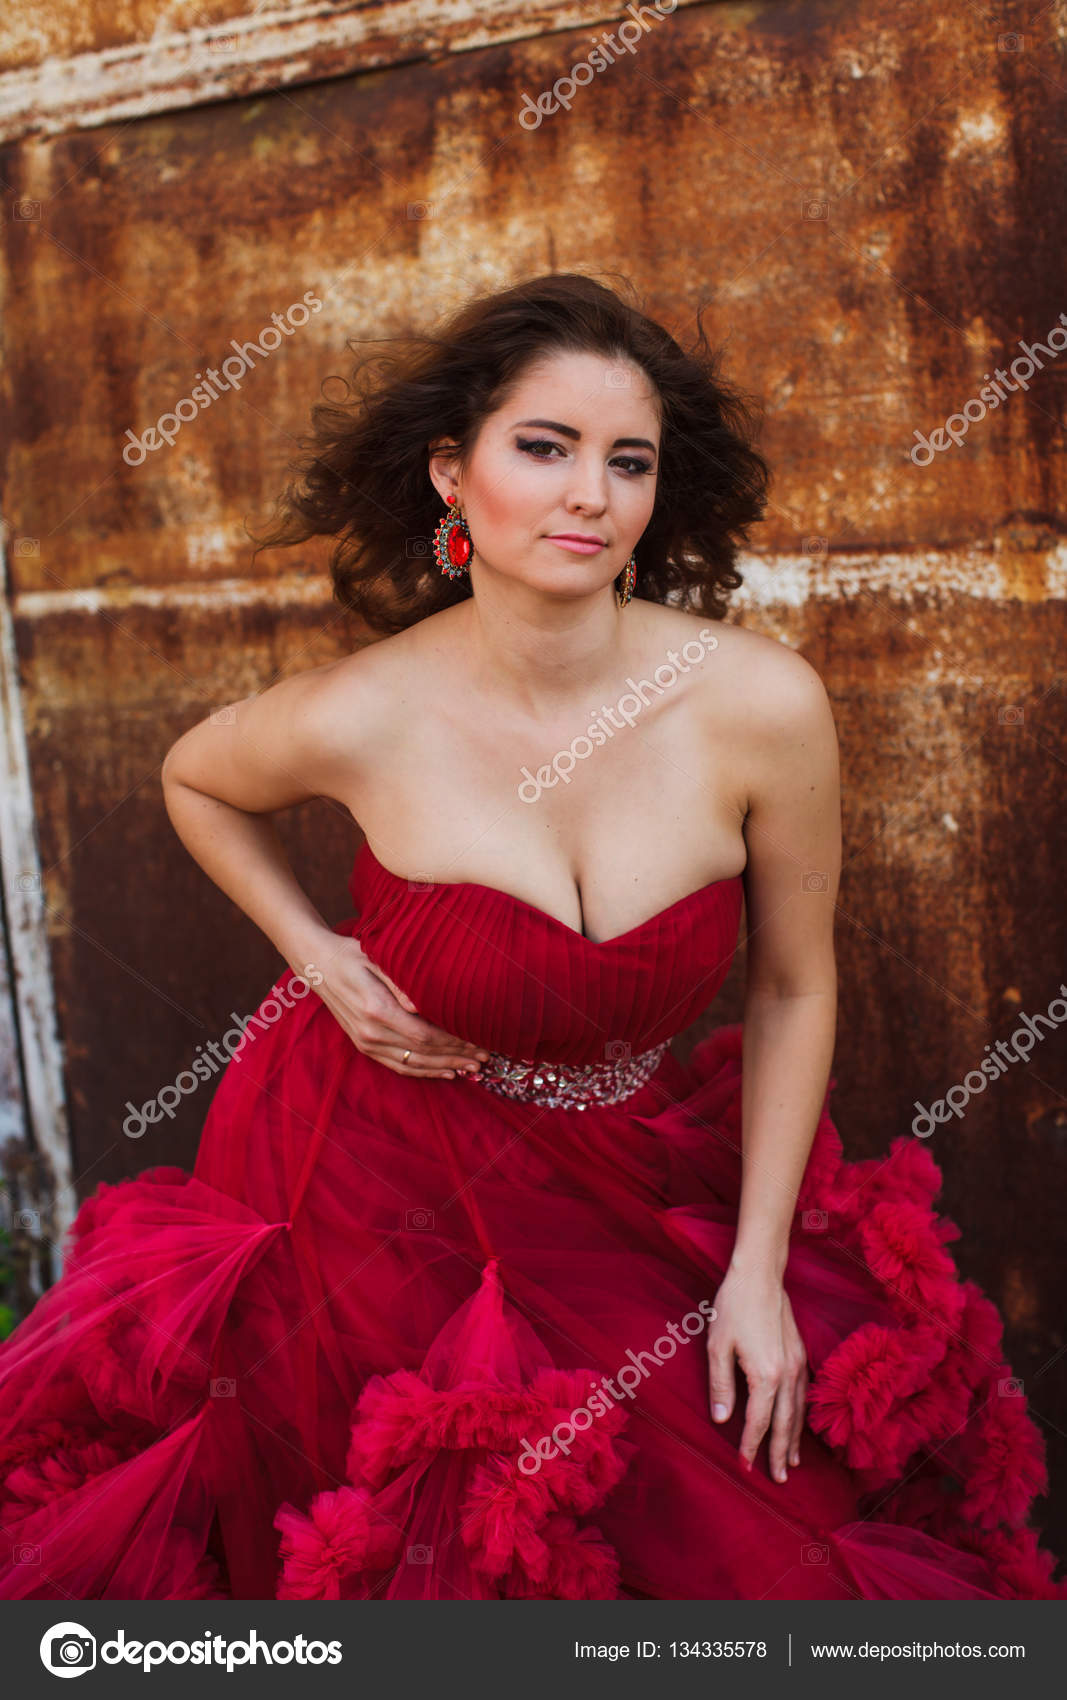 Woman In Cloudy Red Dress Rustic Style Stock Photo